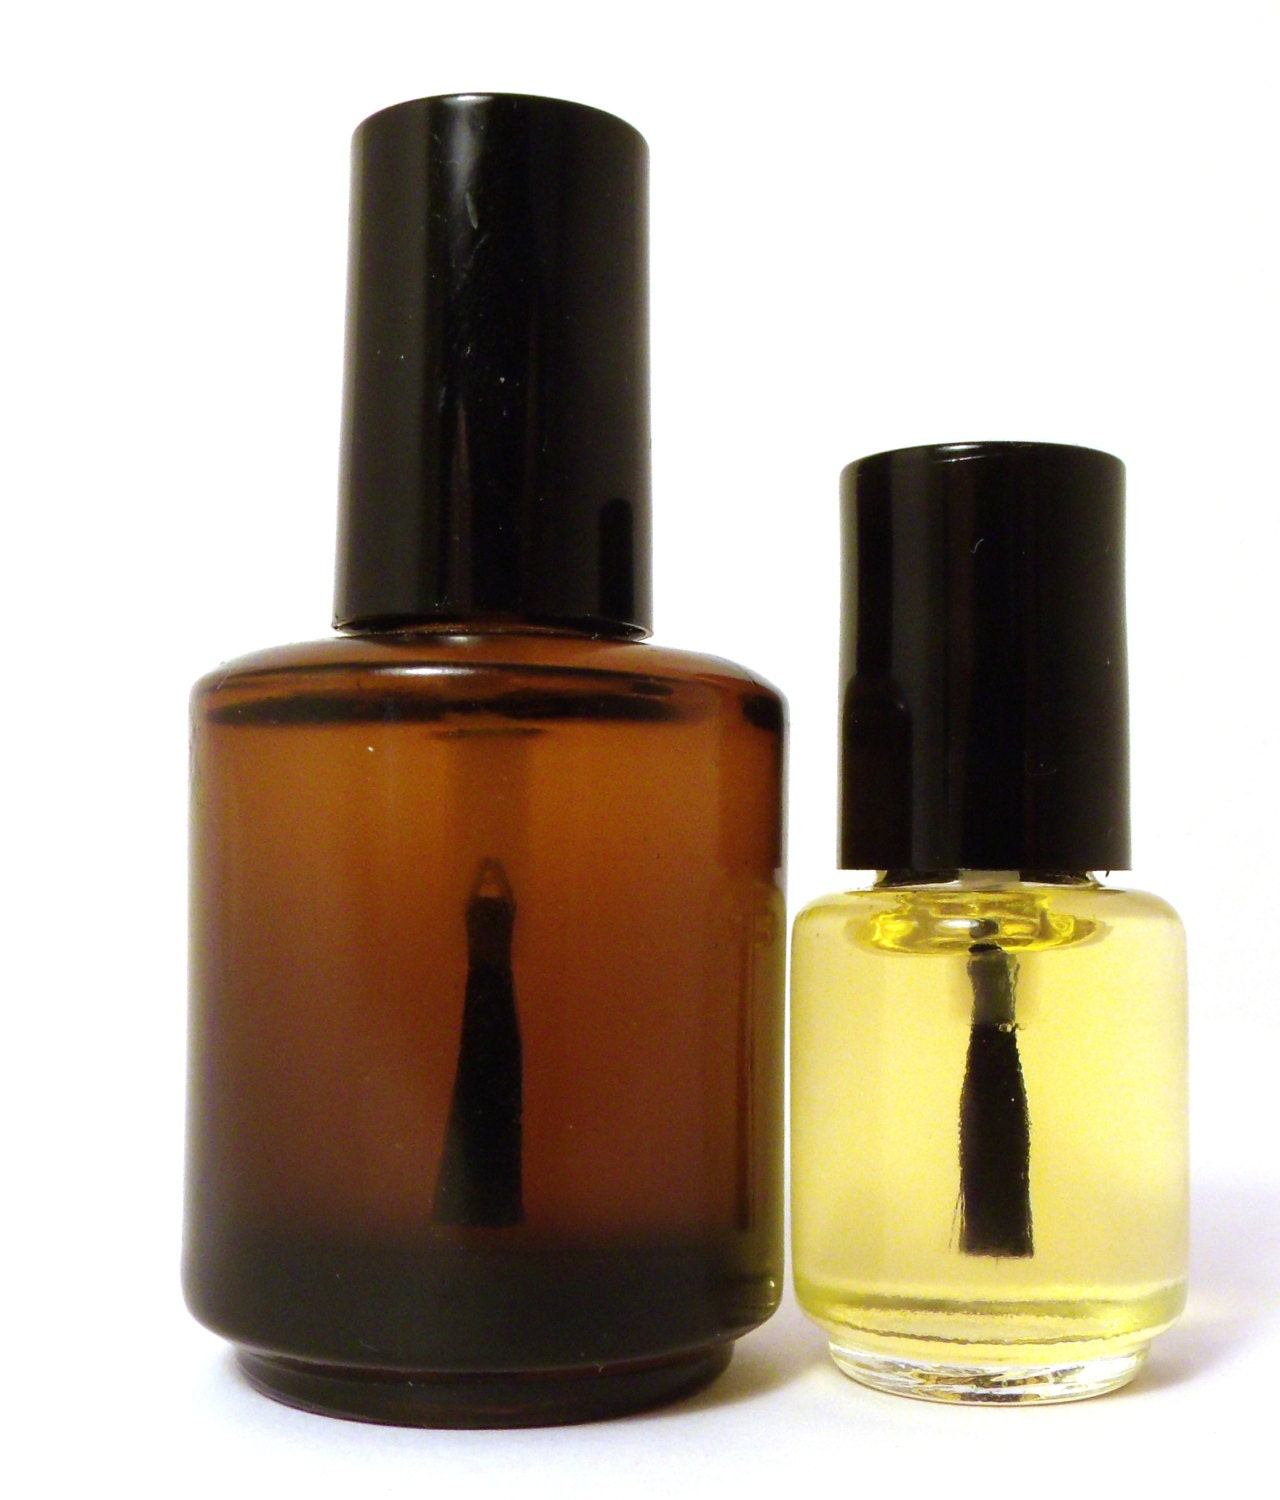 SAMPLE - Handmade Cuticle Oil